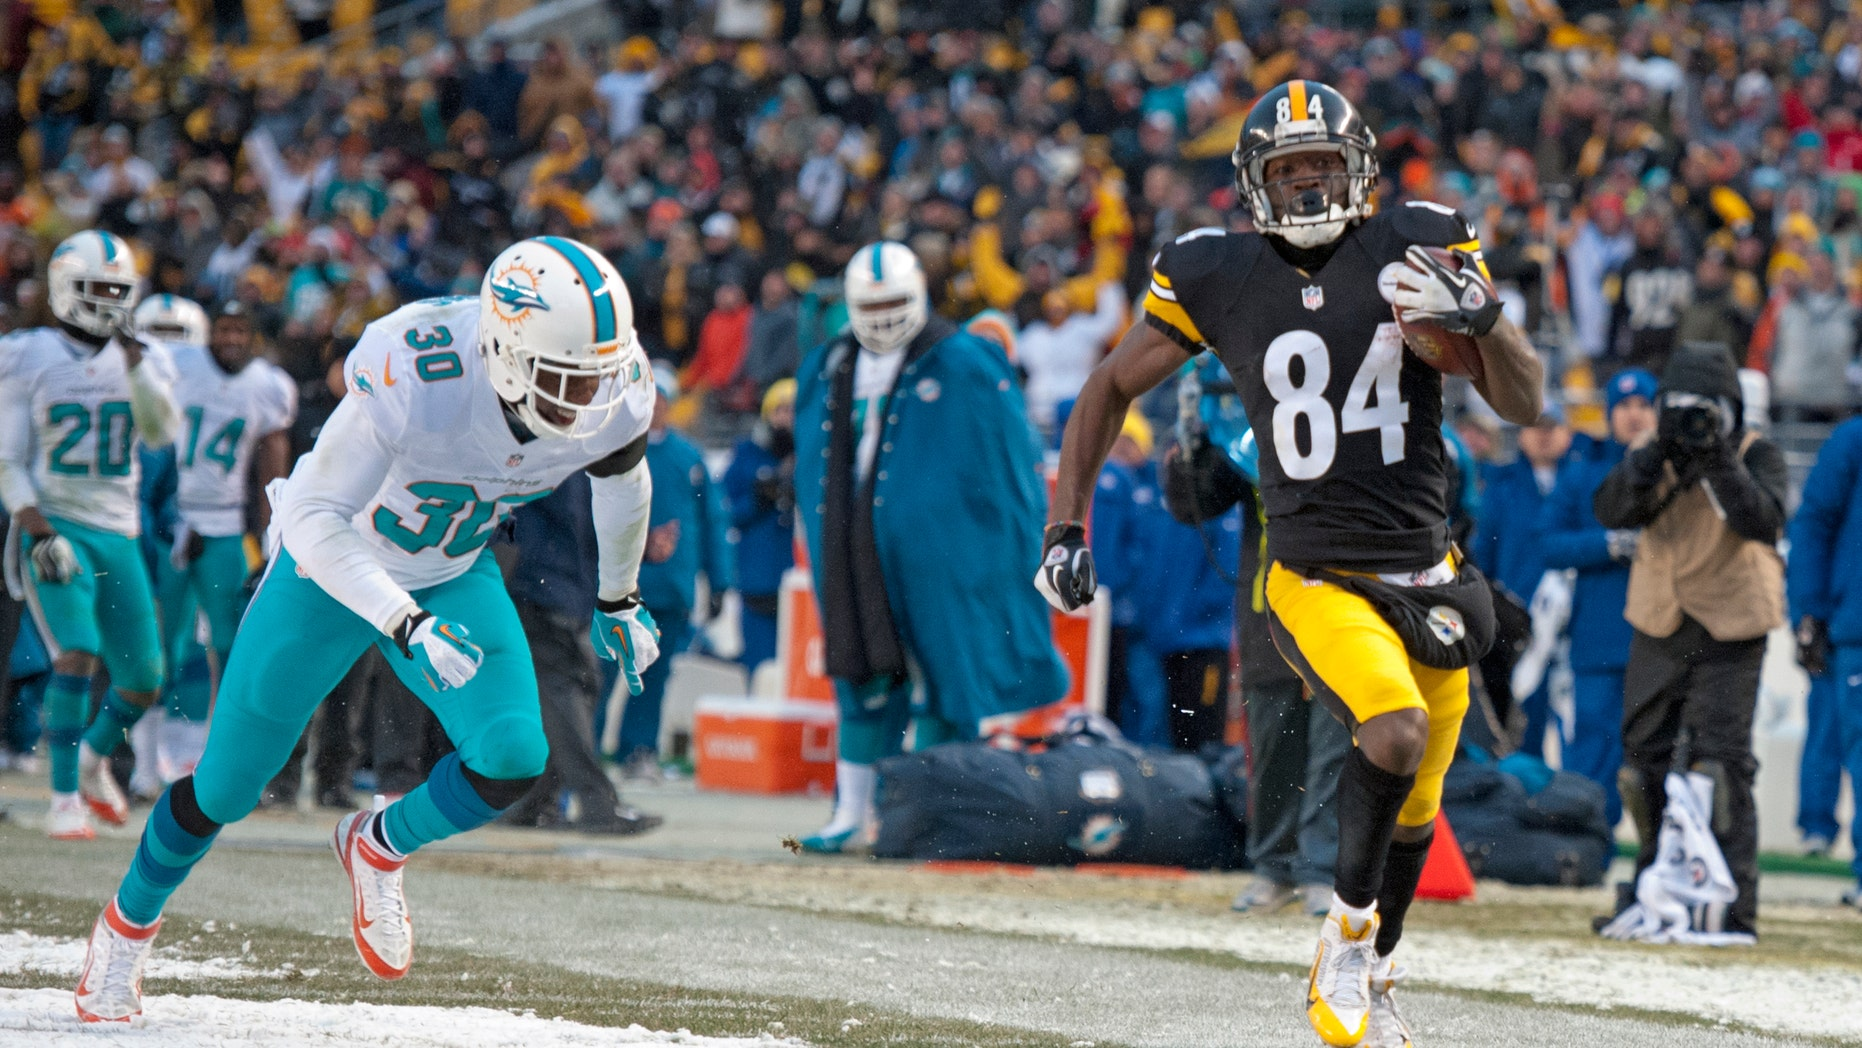 Pittsburgh Steelers wide receiver Antonio Brown (84) appears to step out of bounds as he gets past Miami Dolphins strong safety Chris Clemons (30) on the final play of the of an NFL football game in Pittsburgh, Sunday, Dec. 8, 2013. Brown made it into the end zone on the play, but it was ruled he stepped out of bounds. Miami won 34-28. (AP Photo/Don Wright)